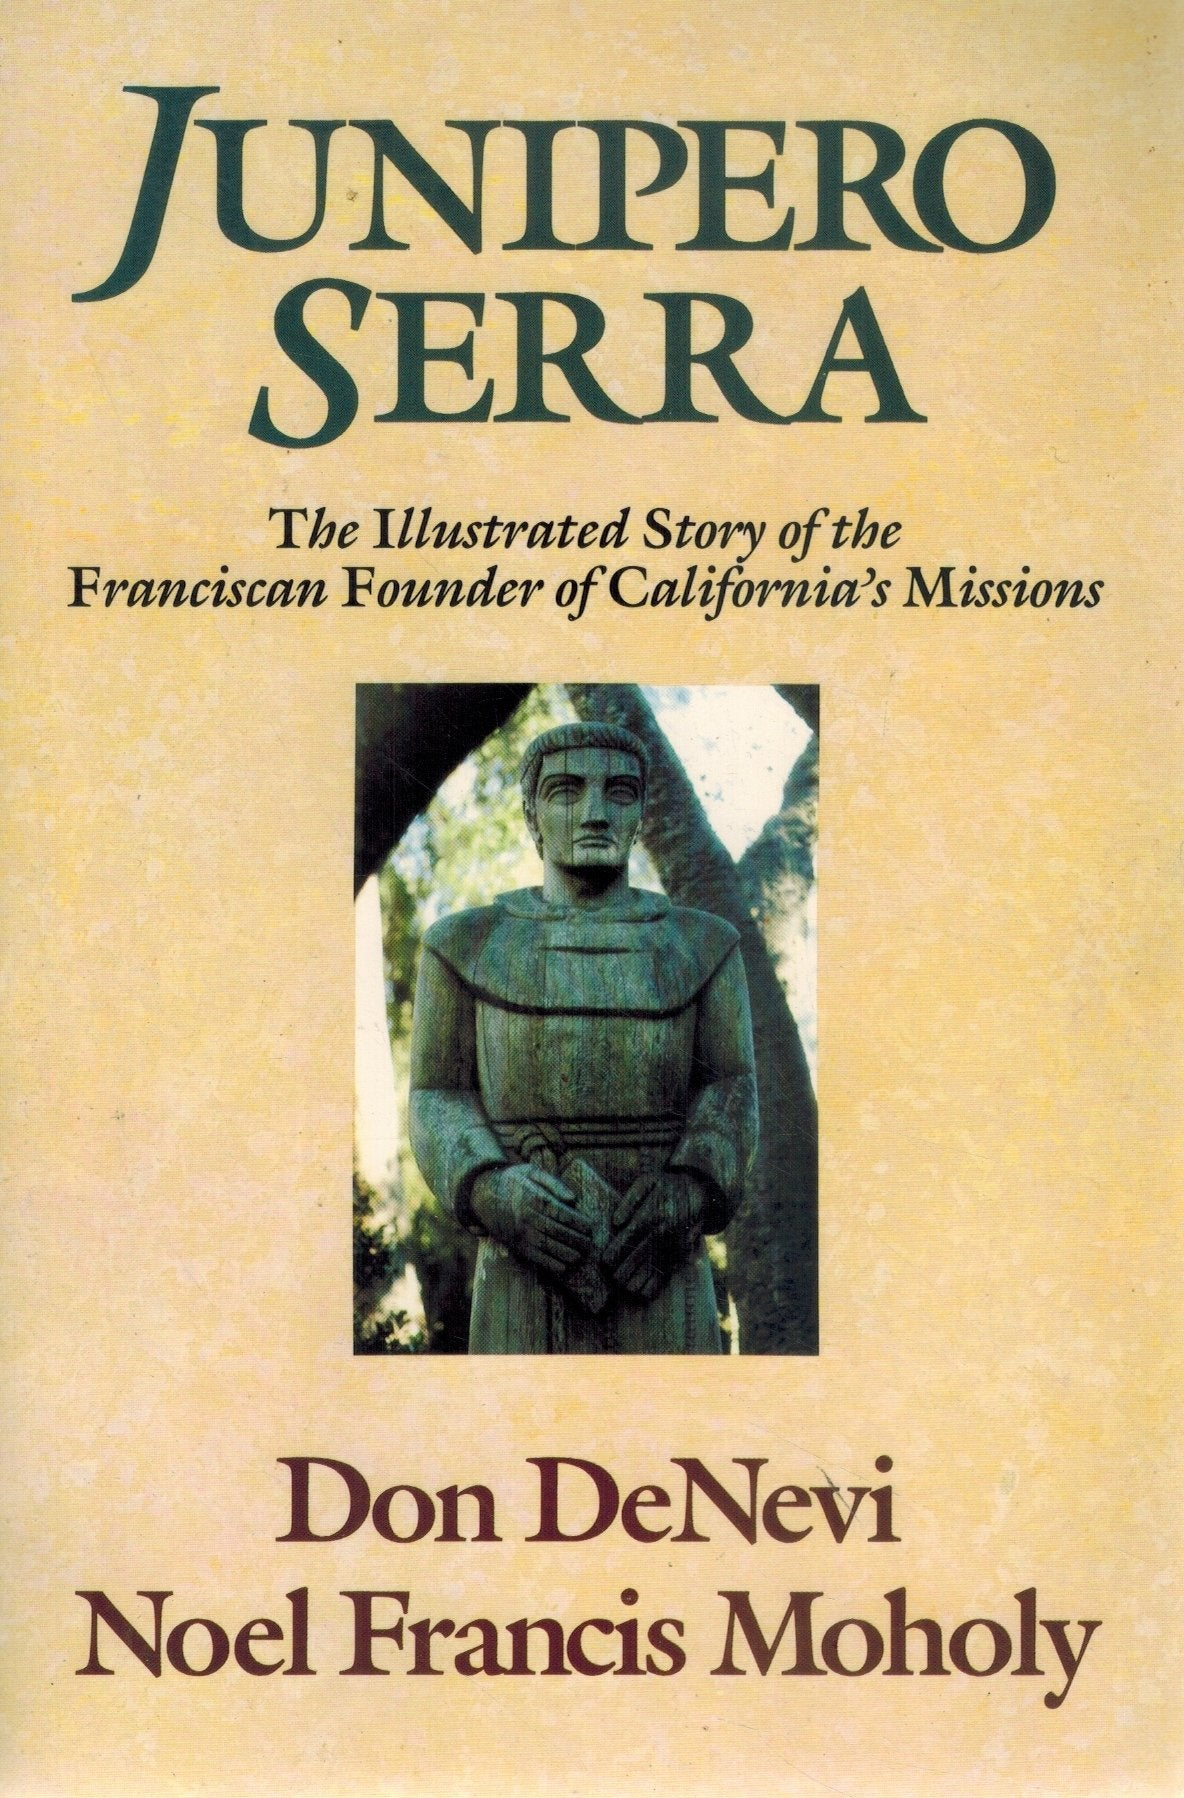 JUNIPERO SERRA The Illustrated Story of the Franciscan Founder of  California's Missions  by Denevi, Don & Noel Francis Moholy